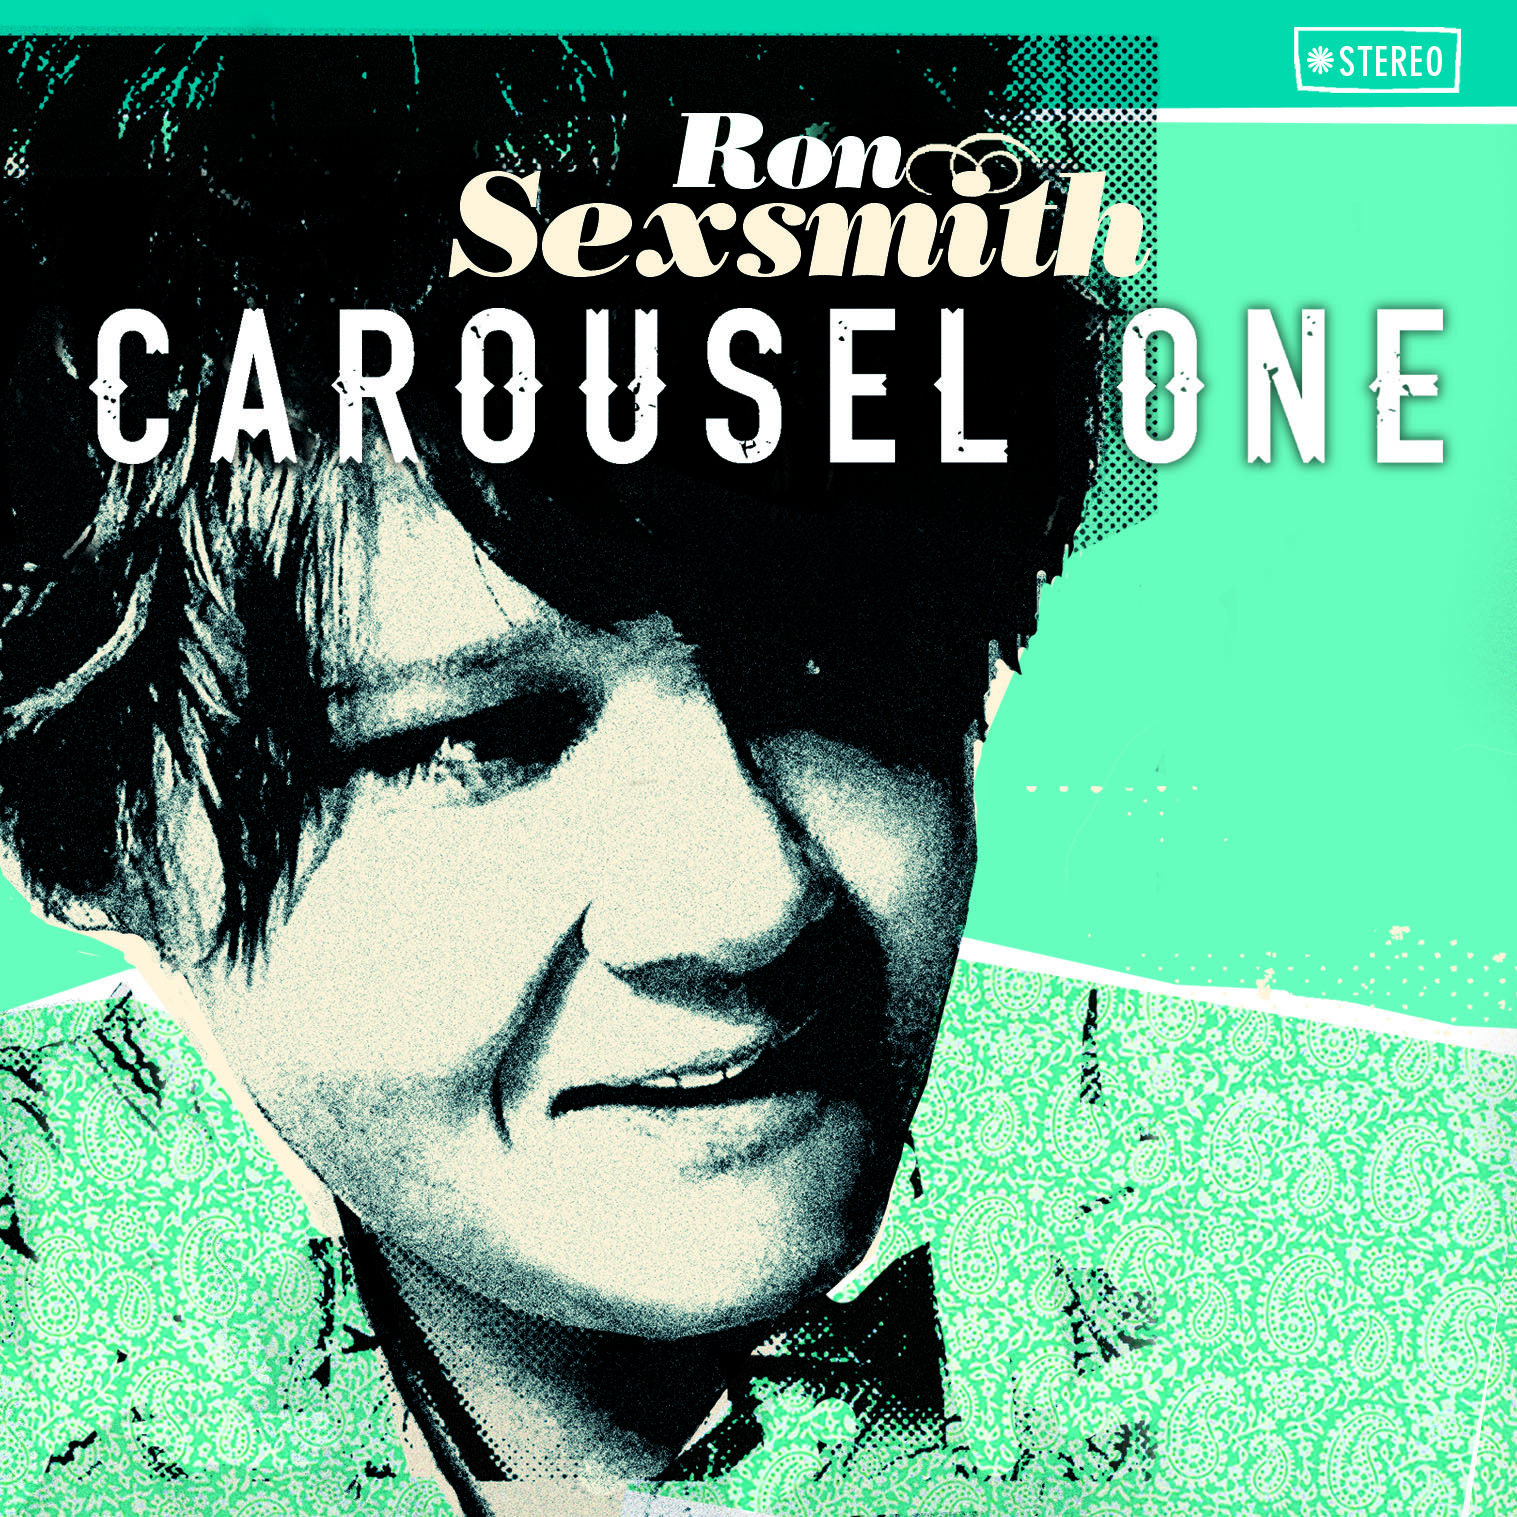 Carousel One - Ron Sexsmith - Musik - Cooking Vinyl - 0711297511314 - 30/3-2015